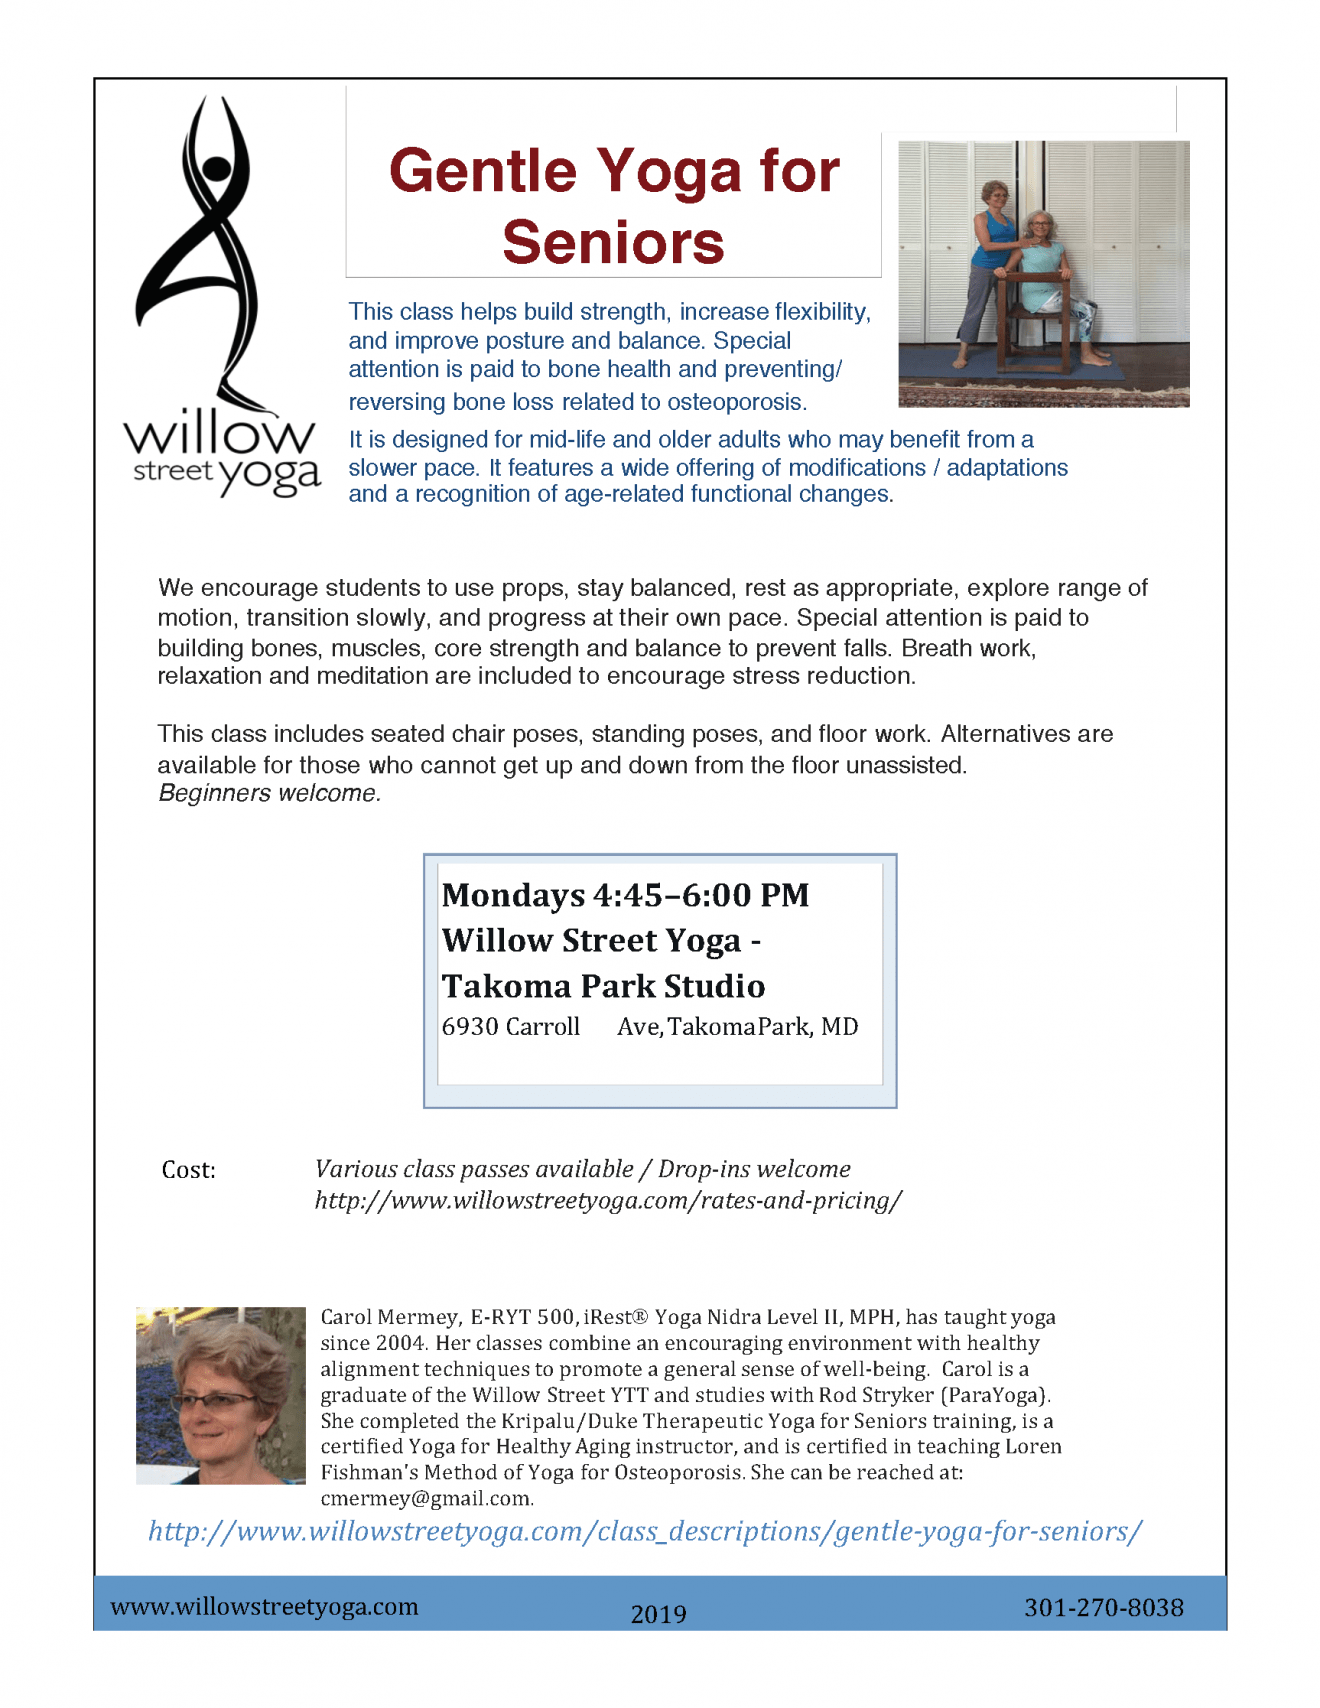 Gentle Yoga for Seniors